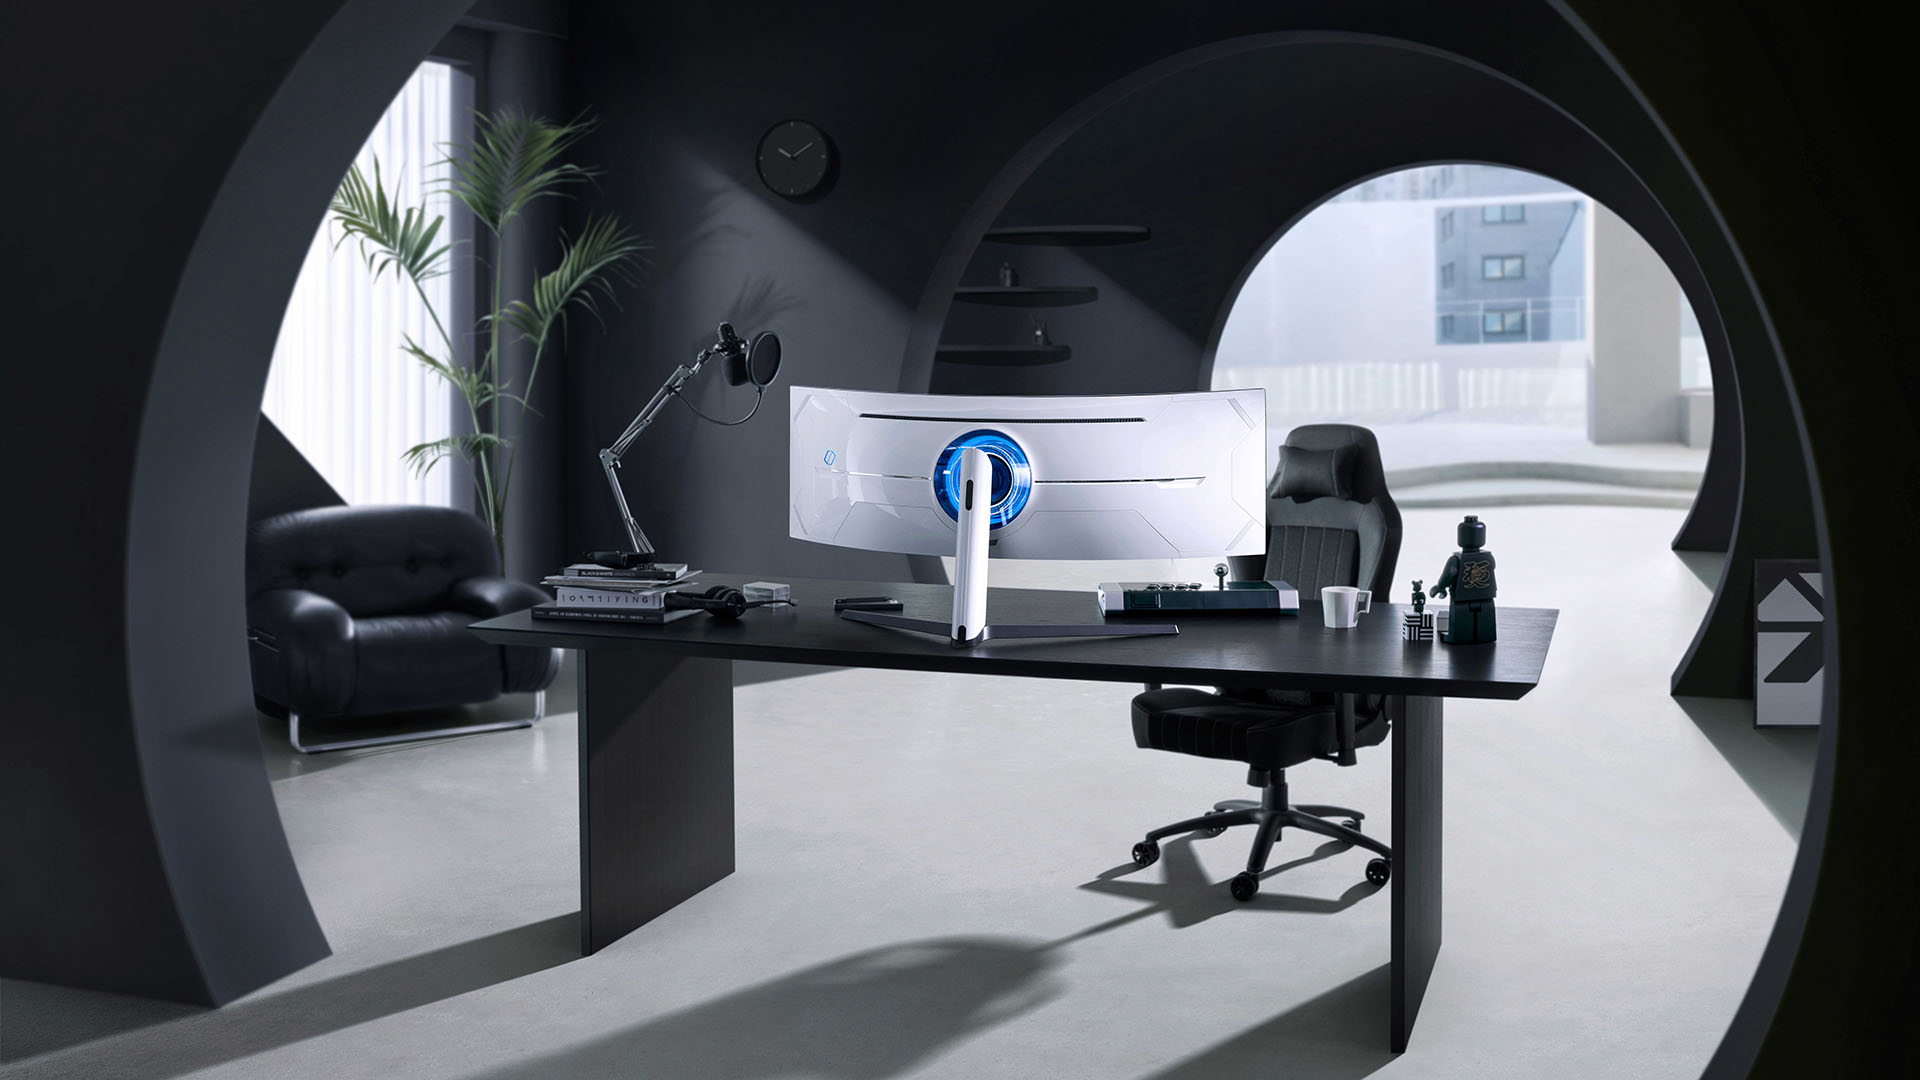 Samsung Odyssey Neo G9 from behind on a fancy desk. Has a blue RGB light on it.